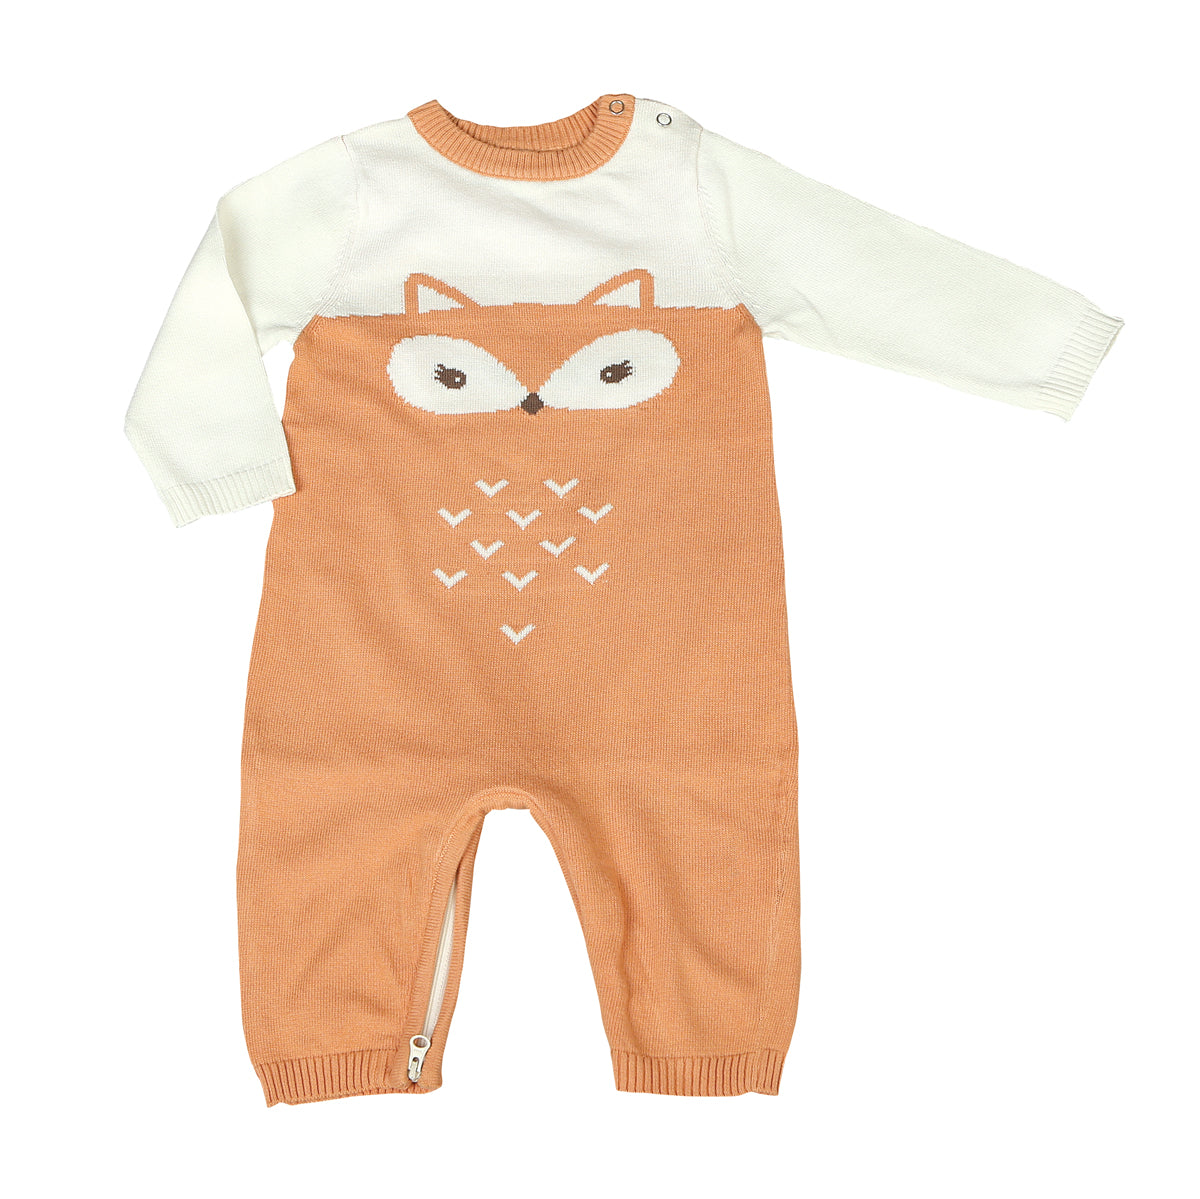 Sweater Romper with Easy Dressing Zipper - Snow/Apricot (fox)